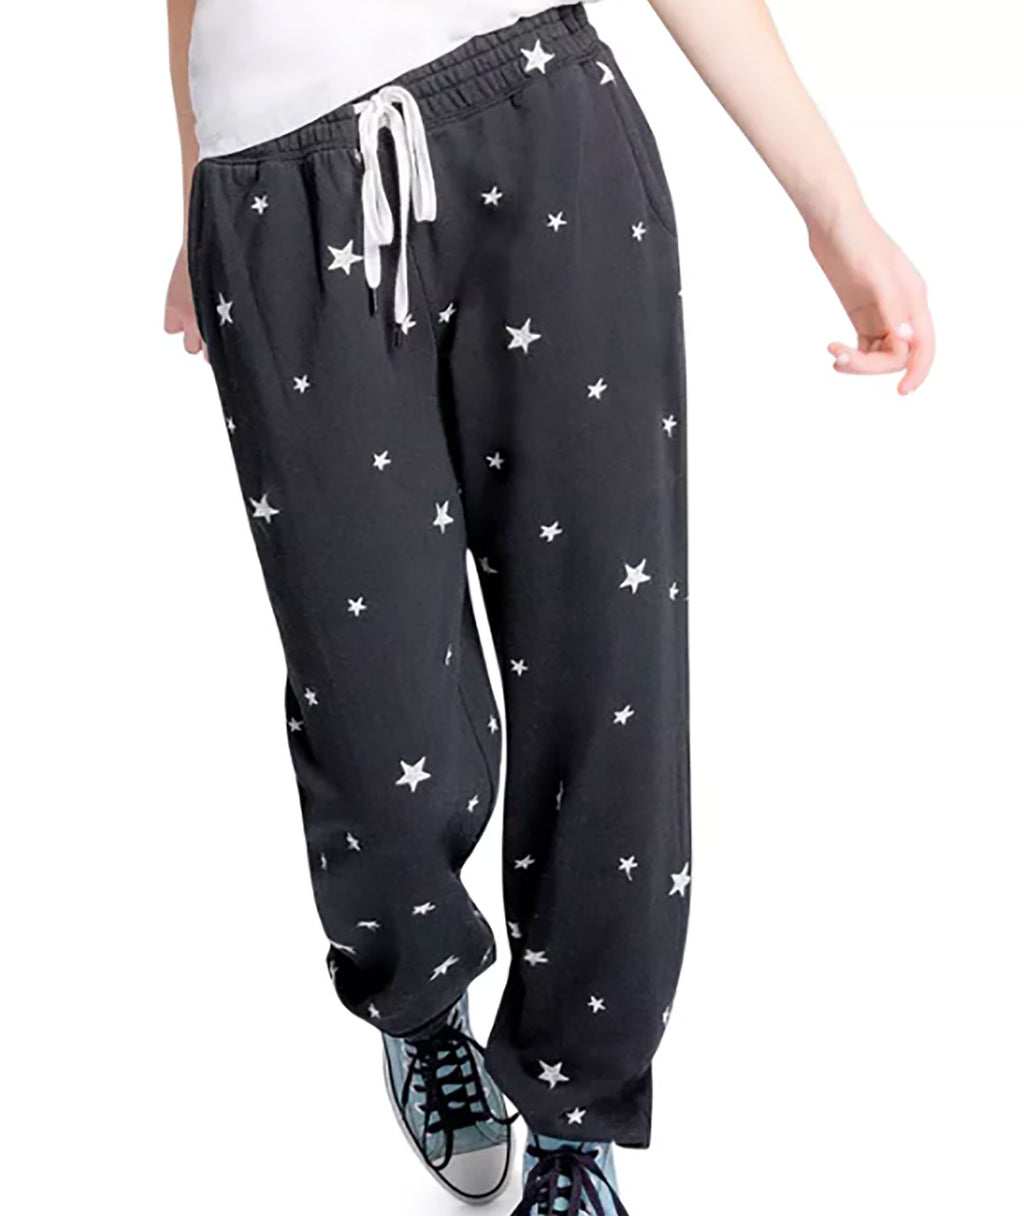 P.J. Salvage Women Black Star Bolt Sweatpants